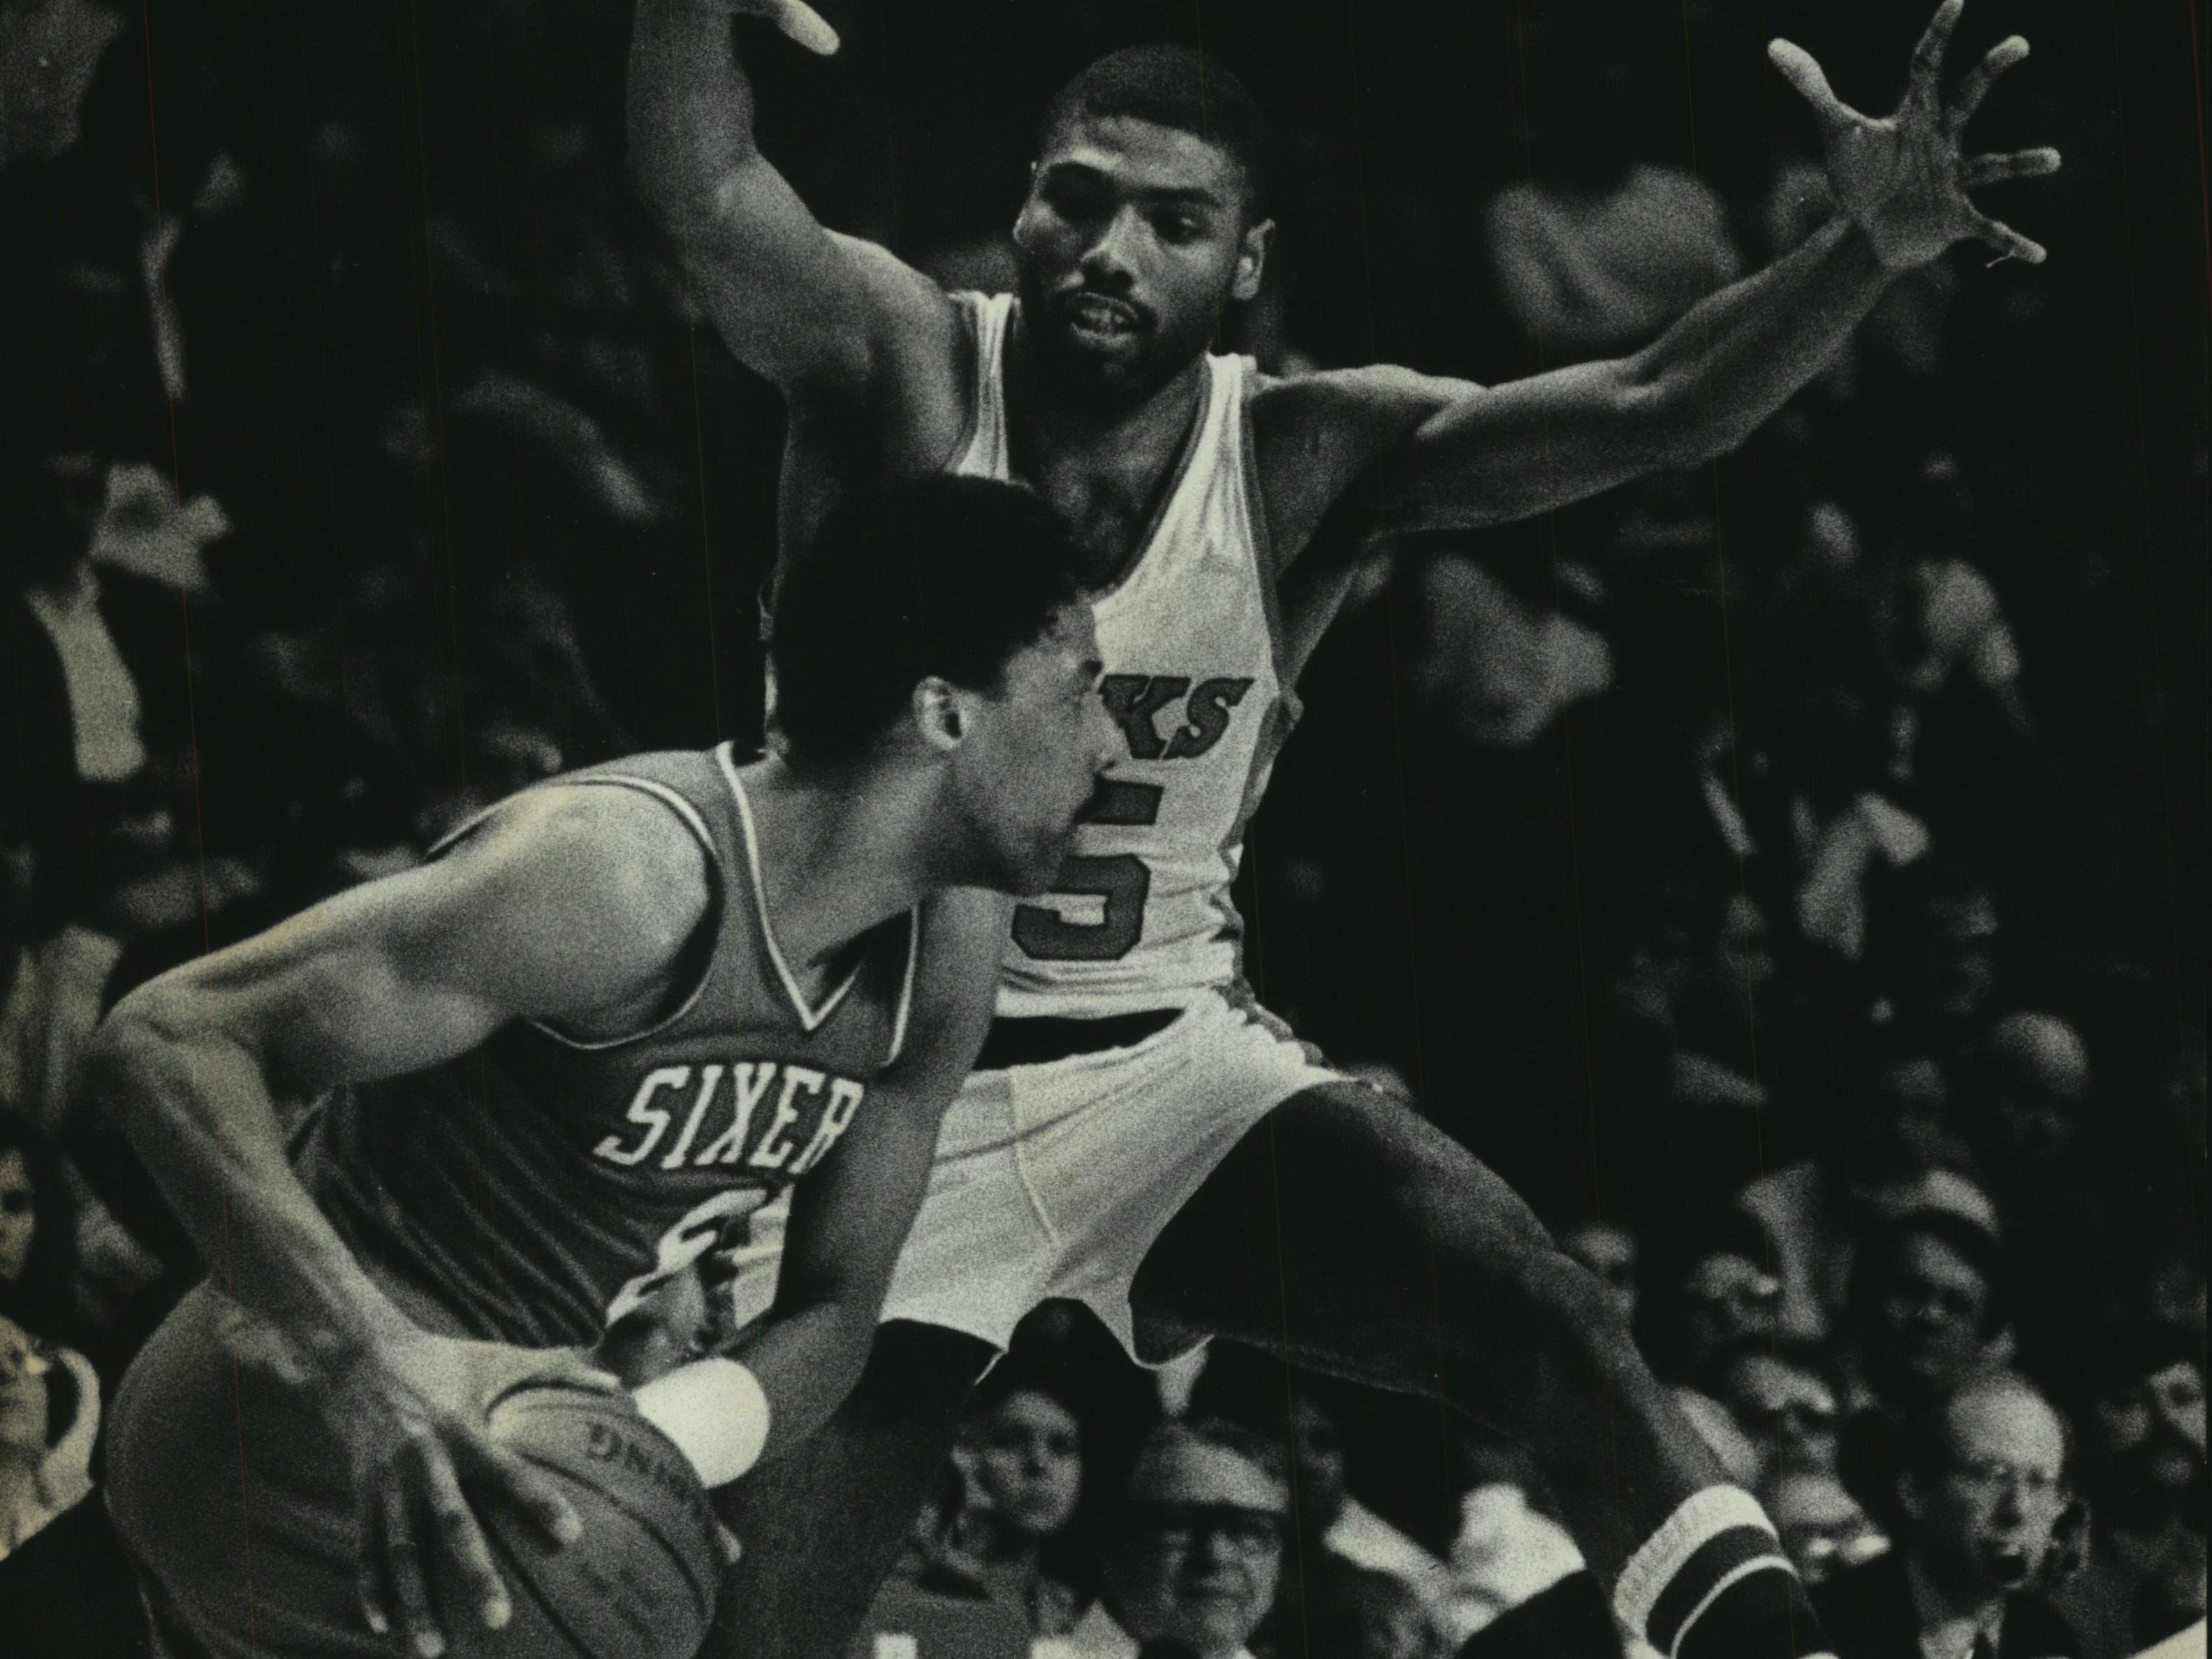 1985: Julius Erving of the Philadelphia 76ers tries to get past the Bucks' Paul Pressey in Game 1 of the Eastern Conference Semifinals on April 28, 1985. The 76ers won, 127-105, and beat the Bucks in the series. This photo was published in the April 29, 1985, Milwaukee Journal.